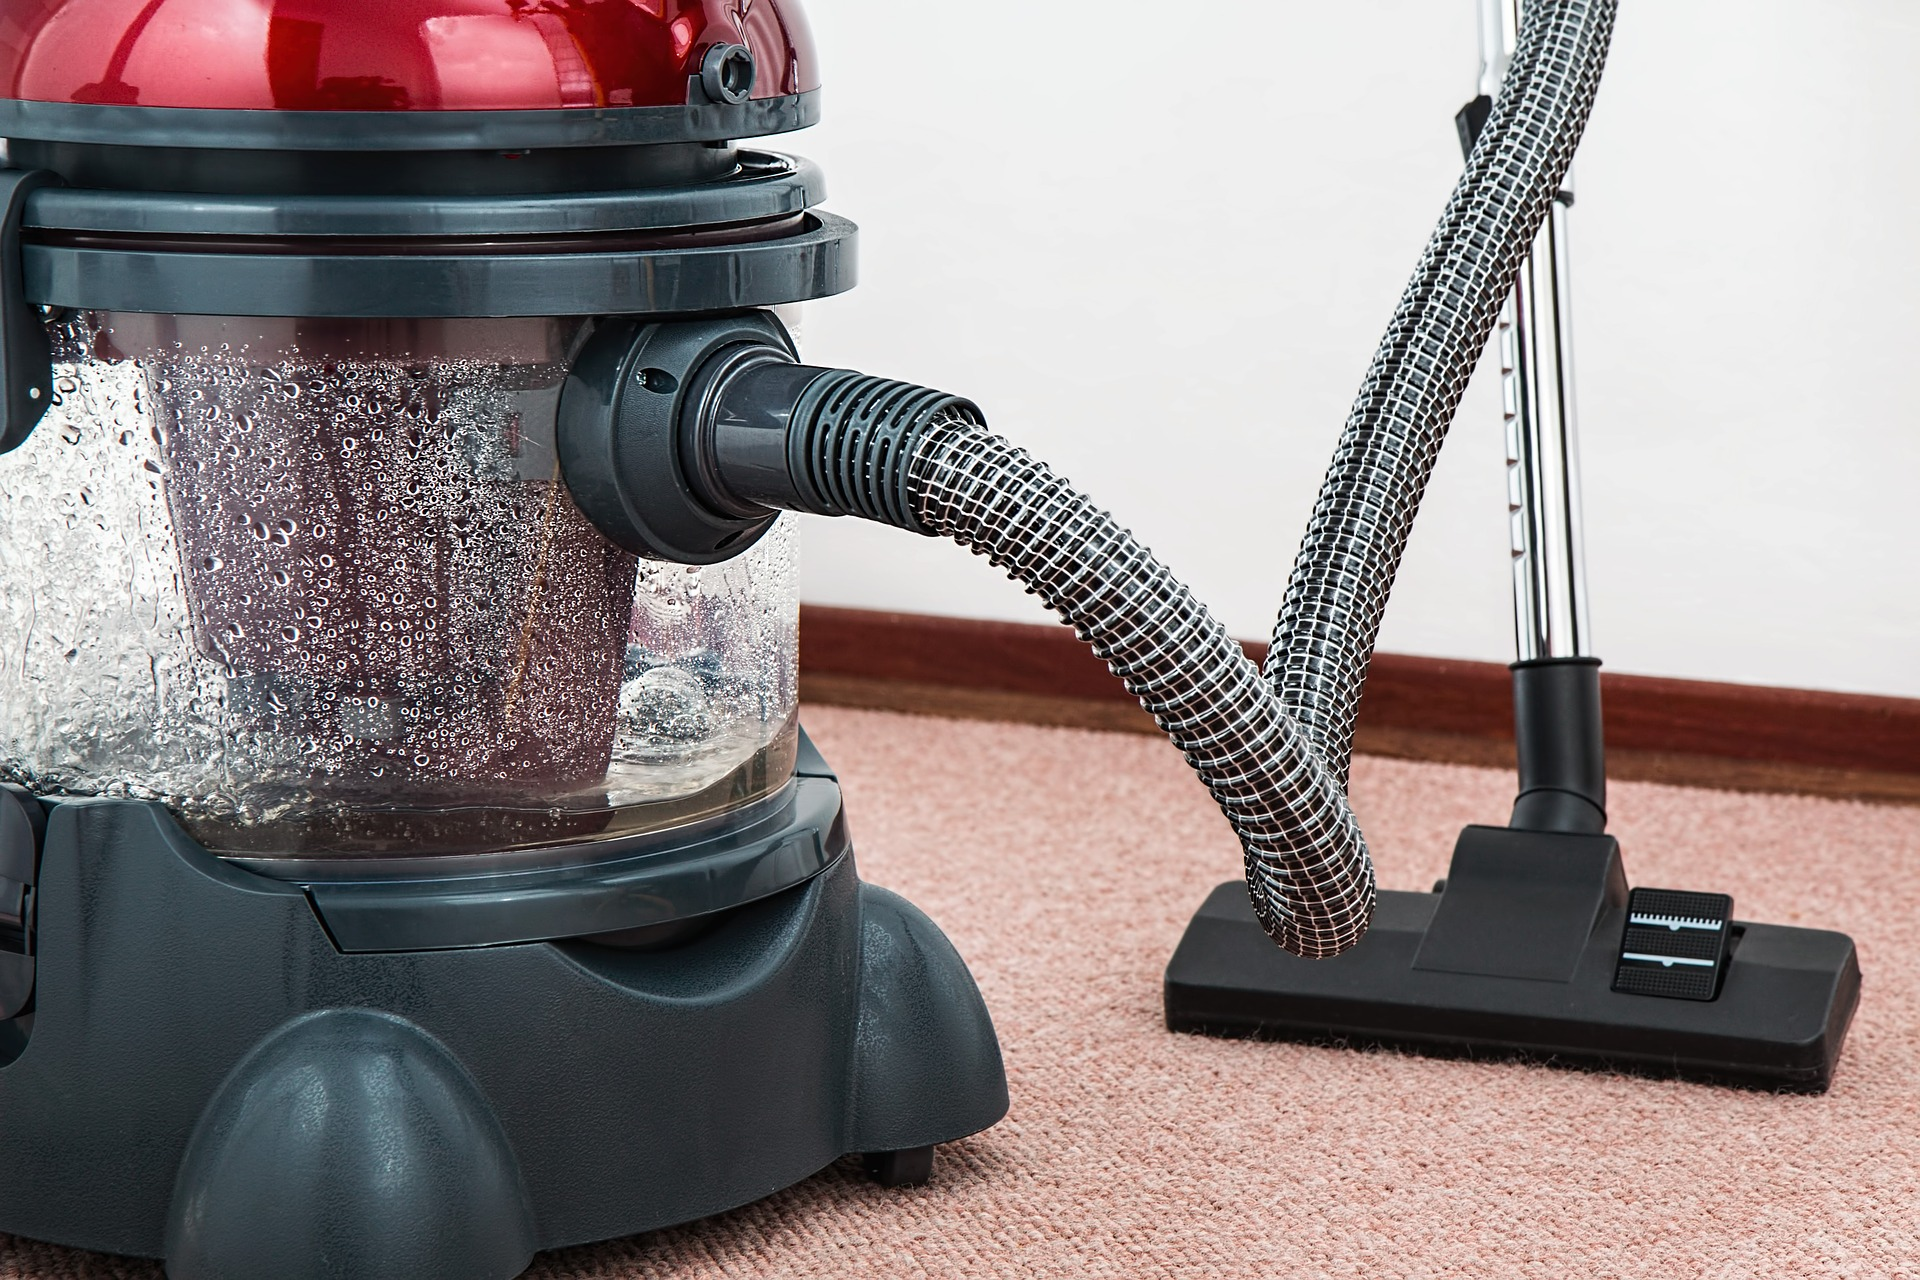 5 Questions to Ask Before Buying a Vacuum Cleaner